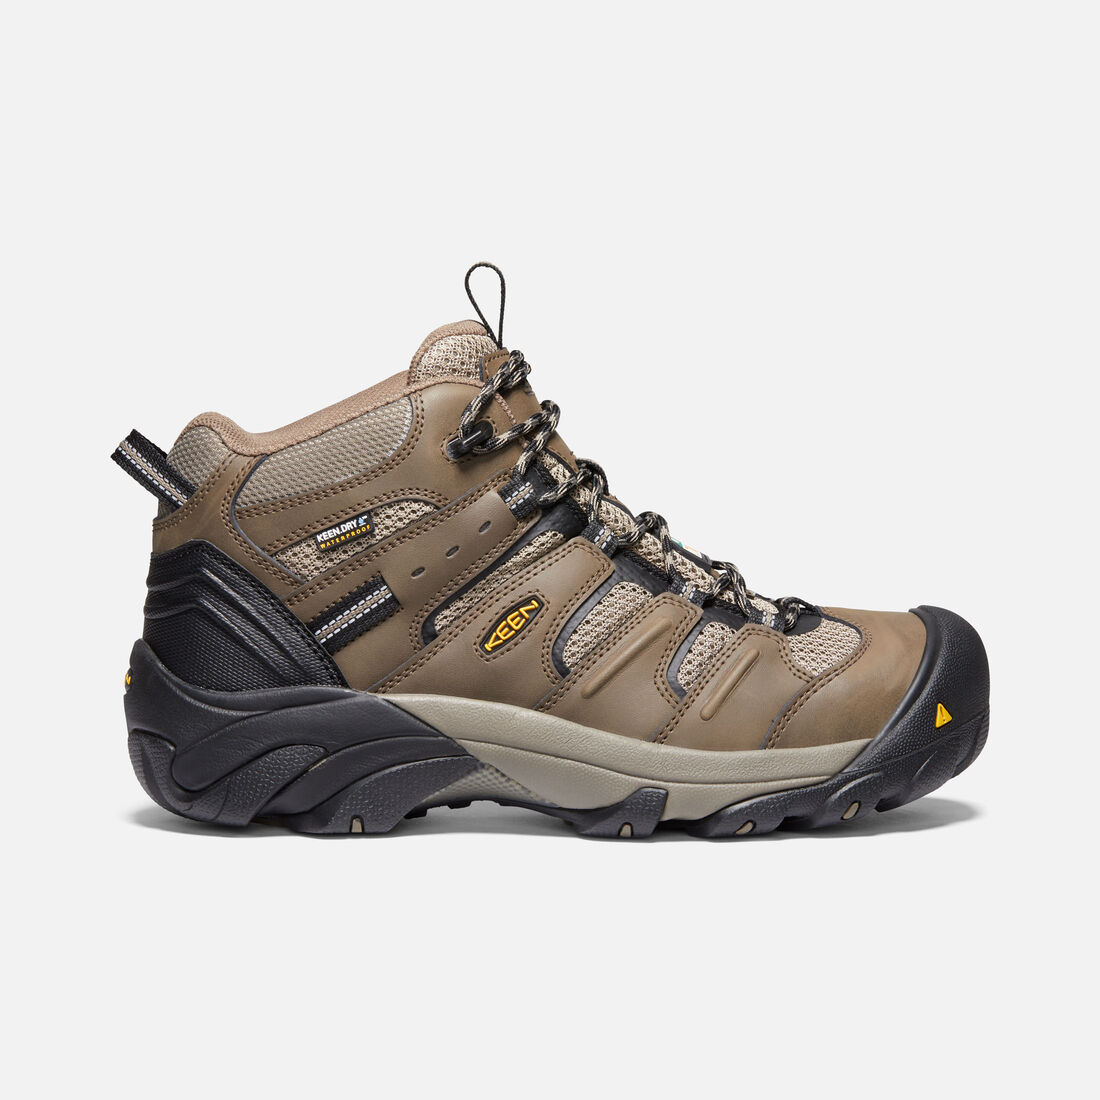 e92510c79b7 Men's CSA LANSING MID WP (STEEL TOE) - Stability, safety, and style ...